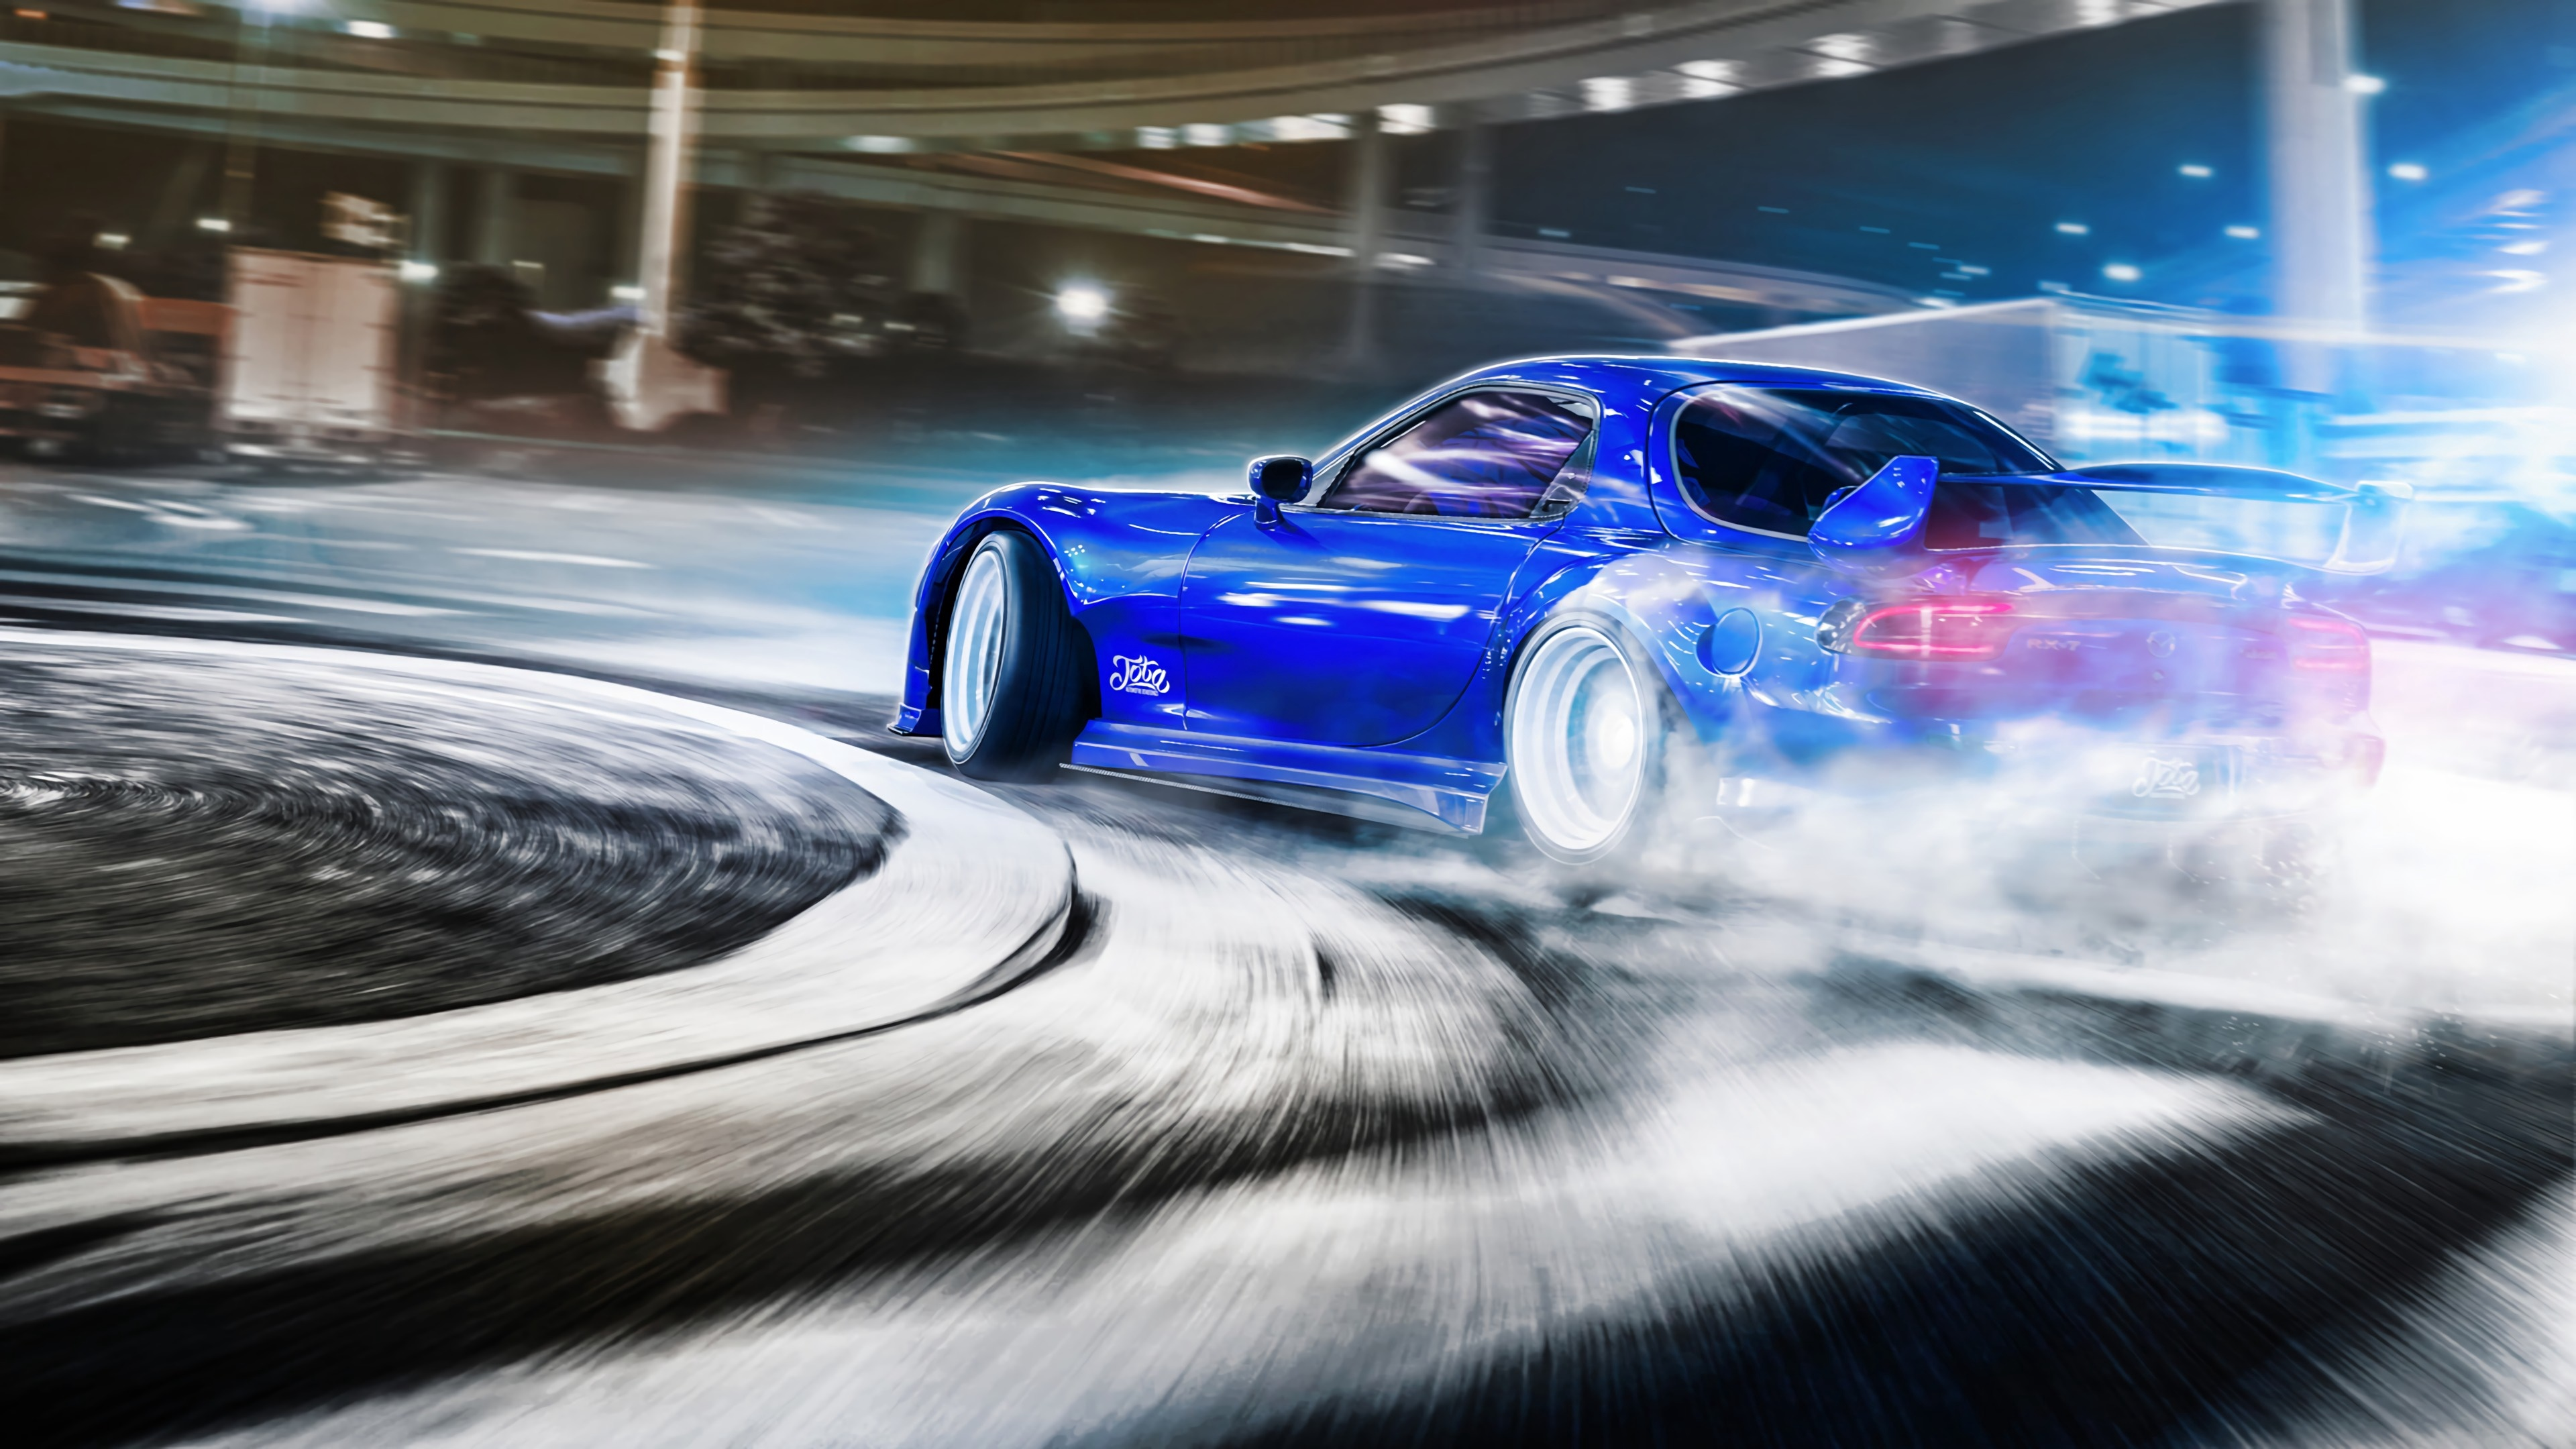 Wallpaper from car category